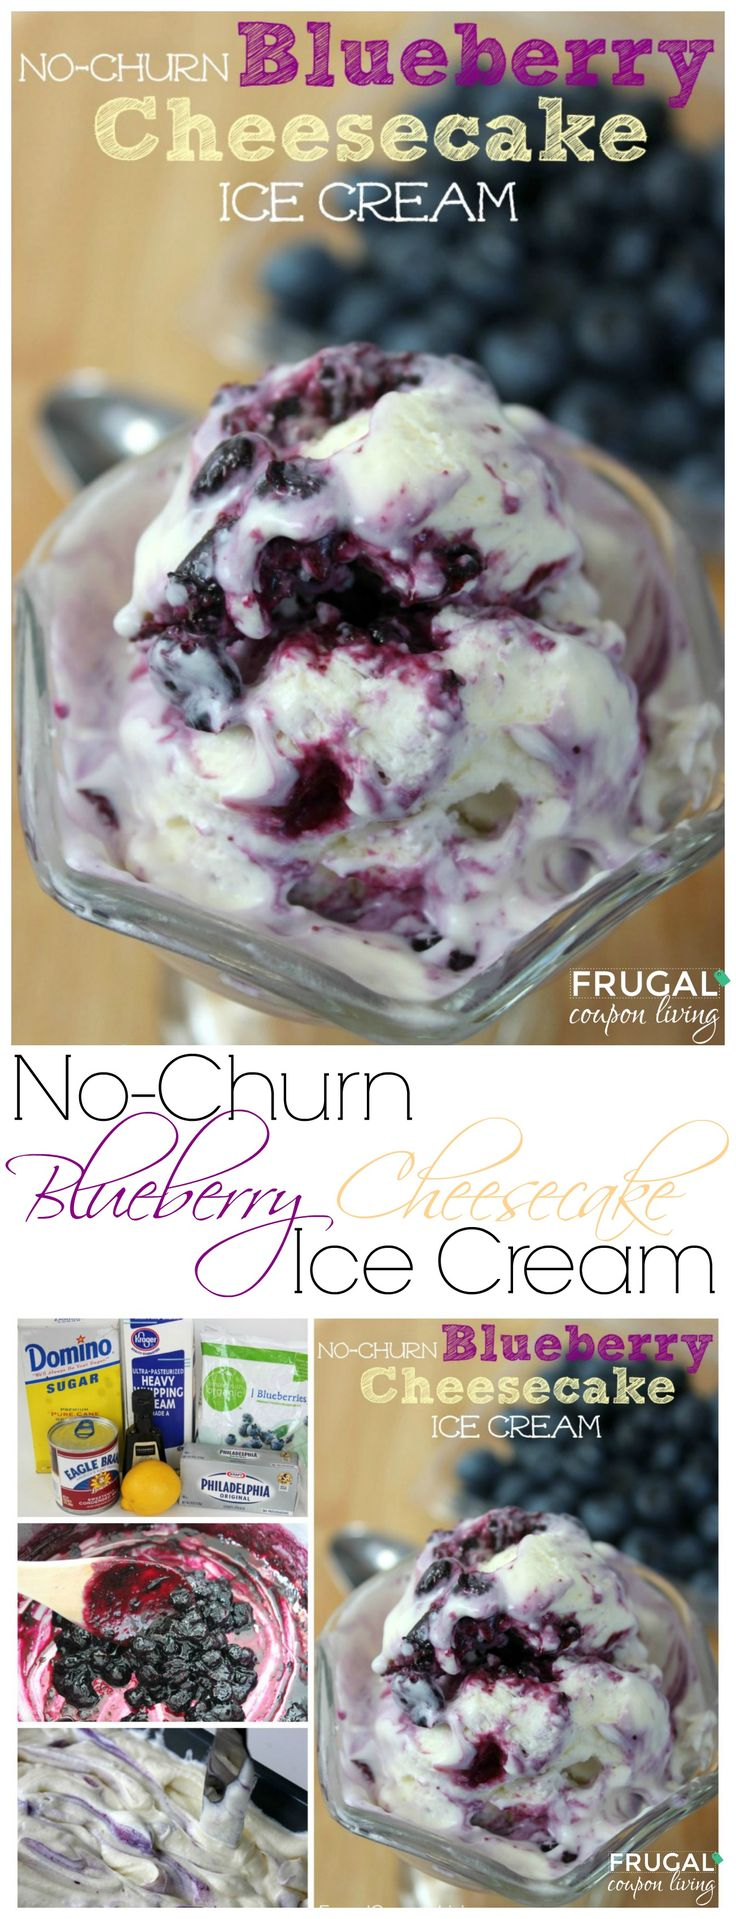 No-Churn Blueberry Cheesecake Ice Cream Recipe on Frugal Coupon Living. Blueberry Recipe. Spring Recipe. Summer Recipe.